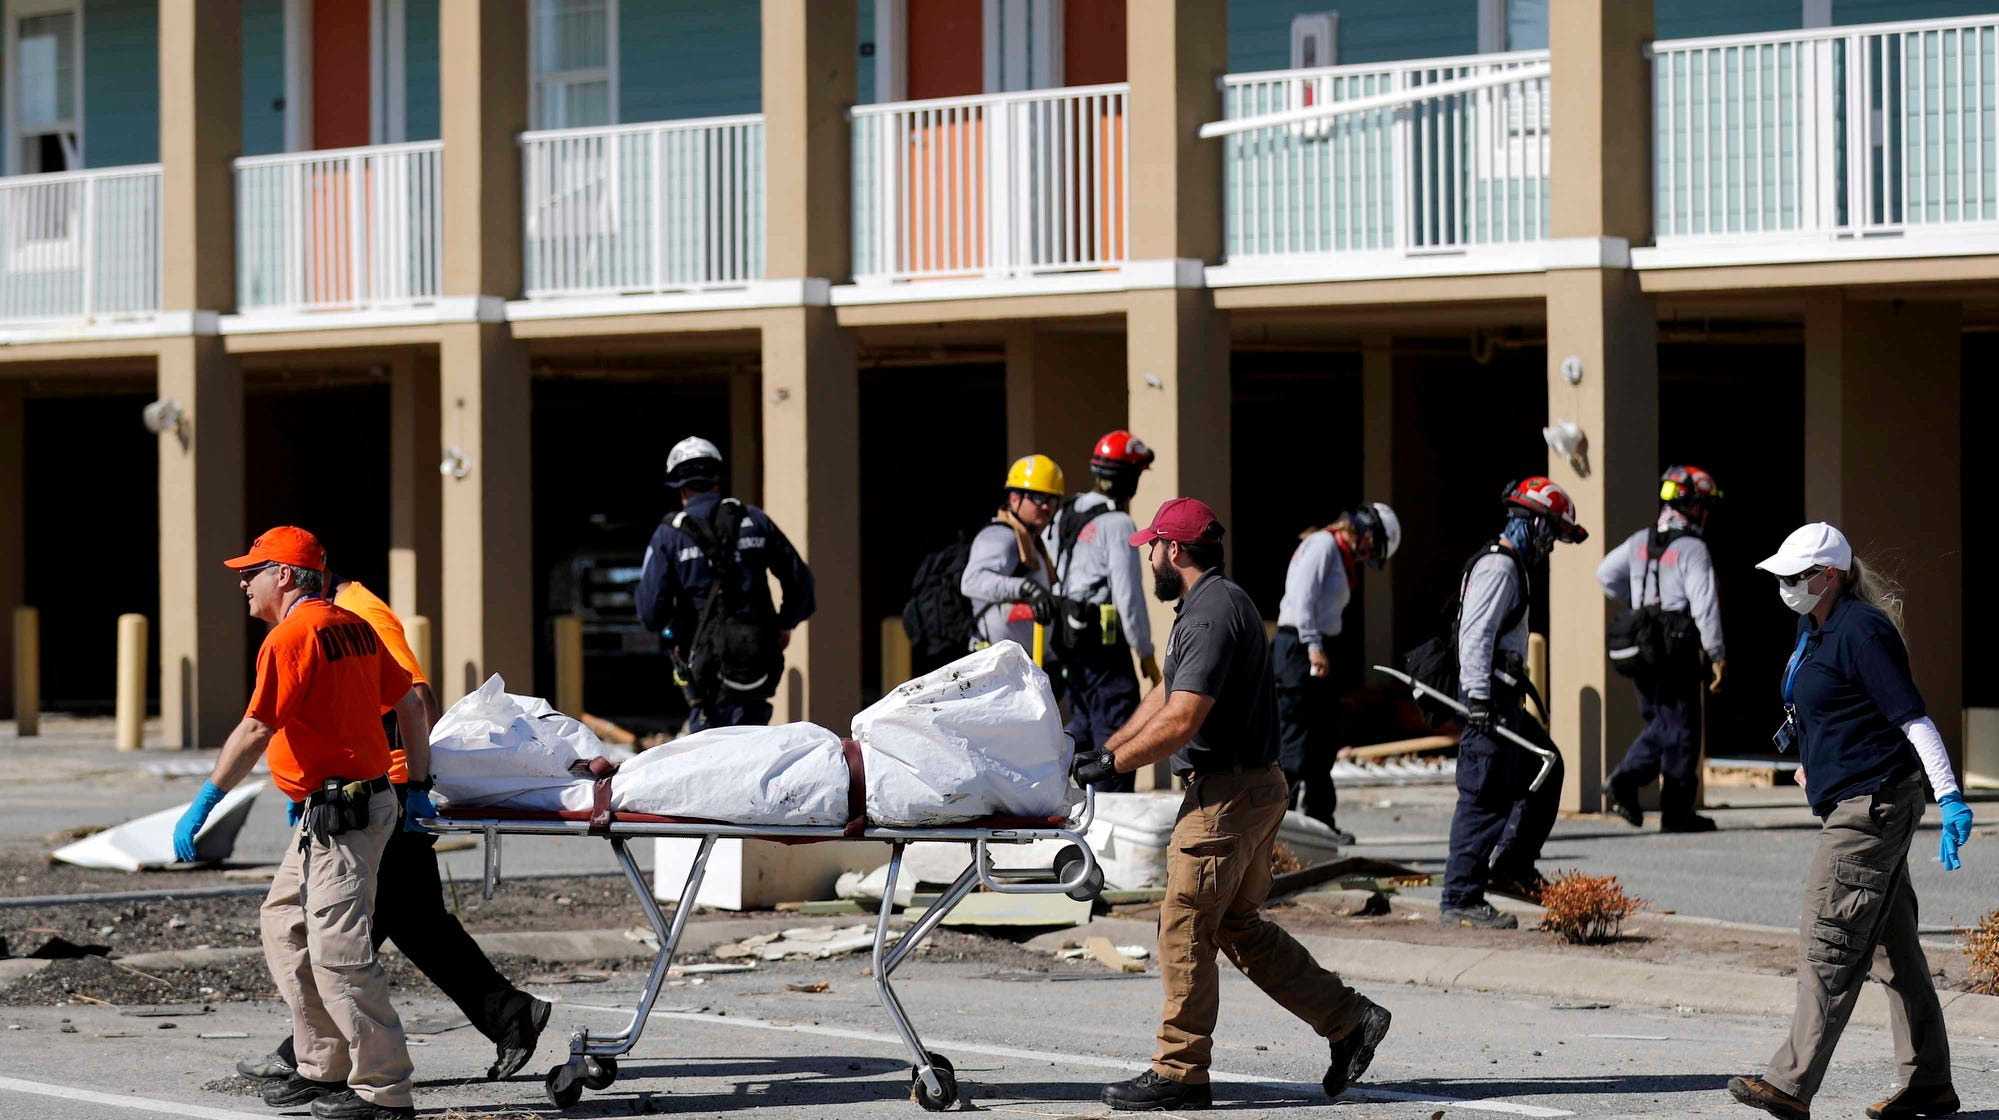 A body is removed after being discovered during the search of a housing structure in the aftermath of Hurricane Michael in Mexico Beach, Fla., Friday.